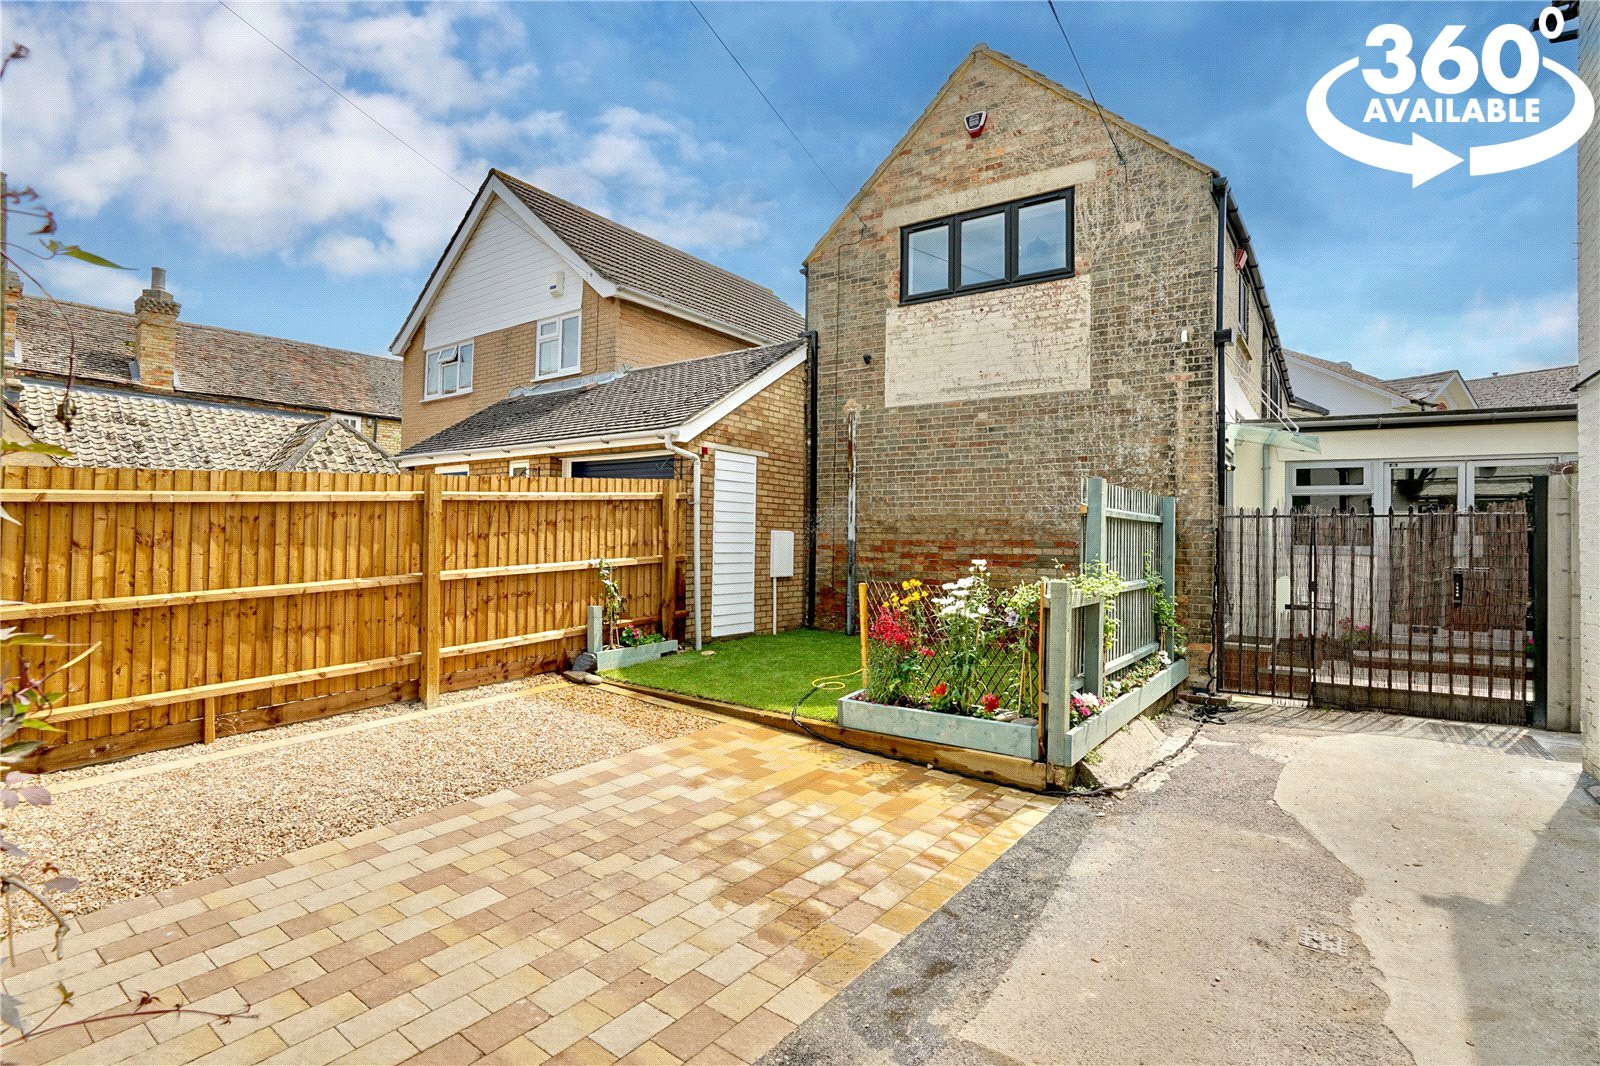 2 bed house for sale in Eaton Ford, St. Neots Road, PE19 7AD  - Property Image 1